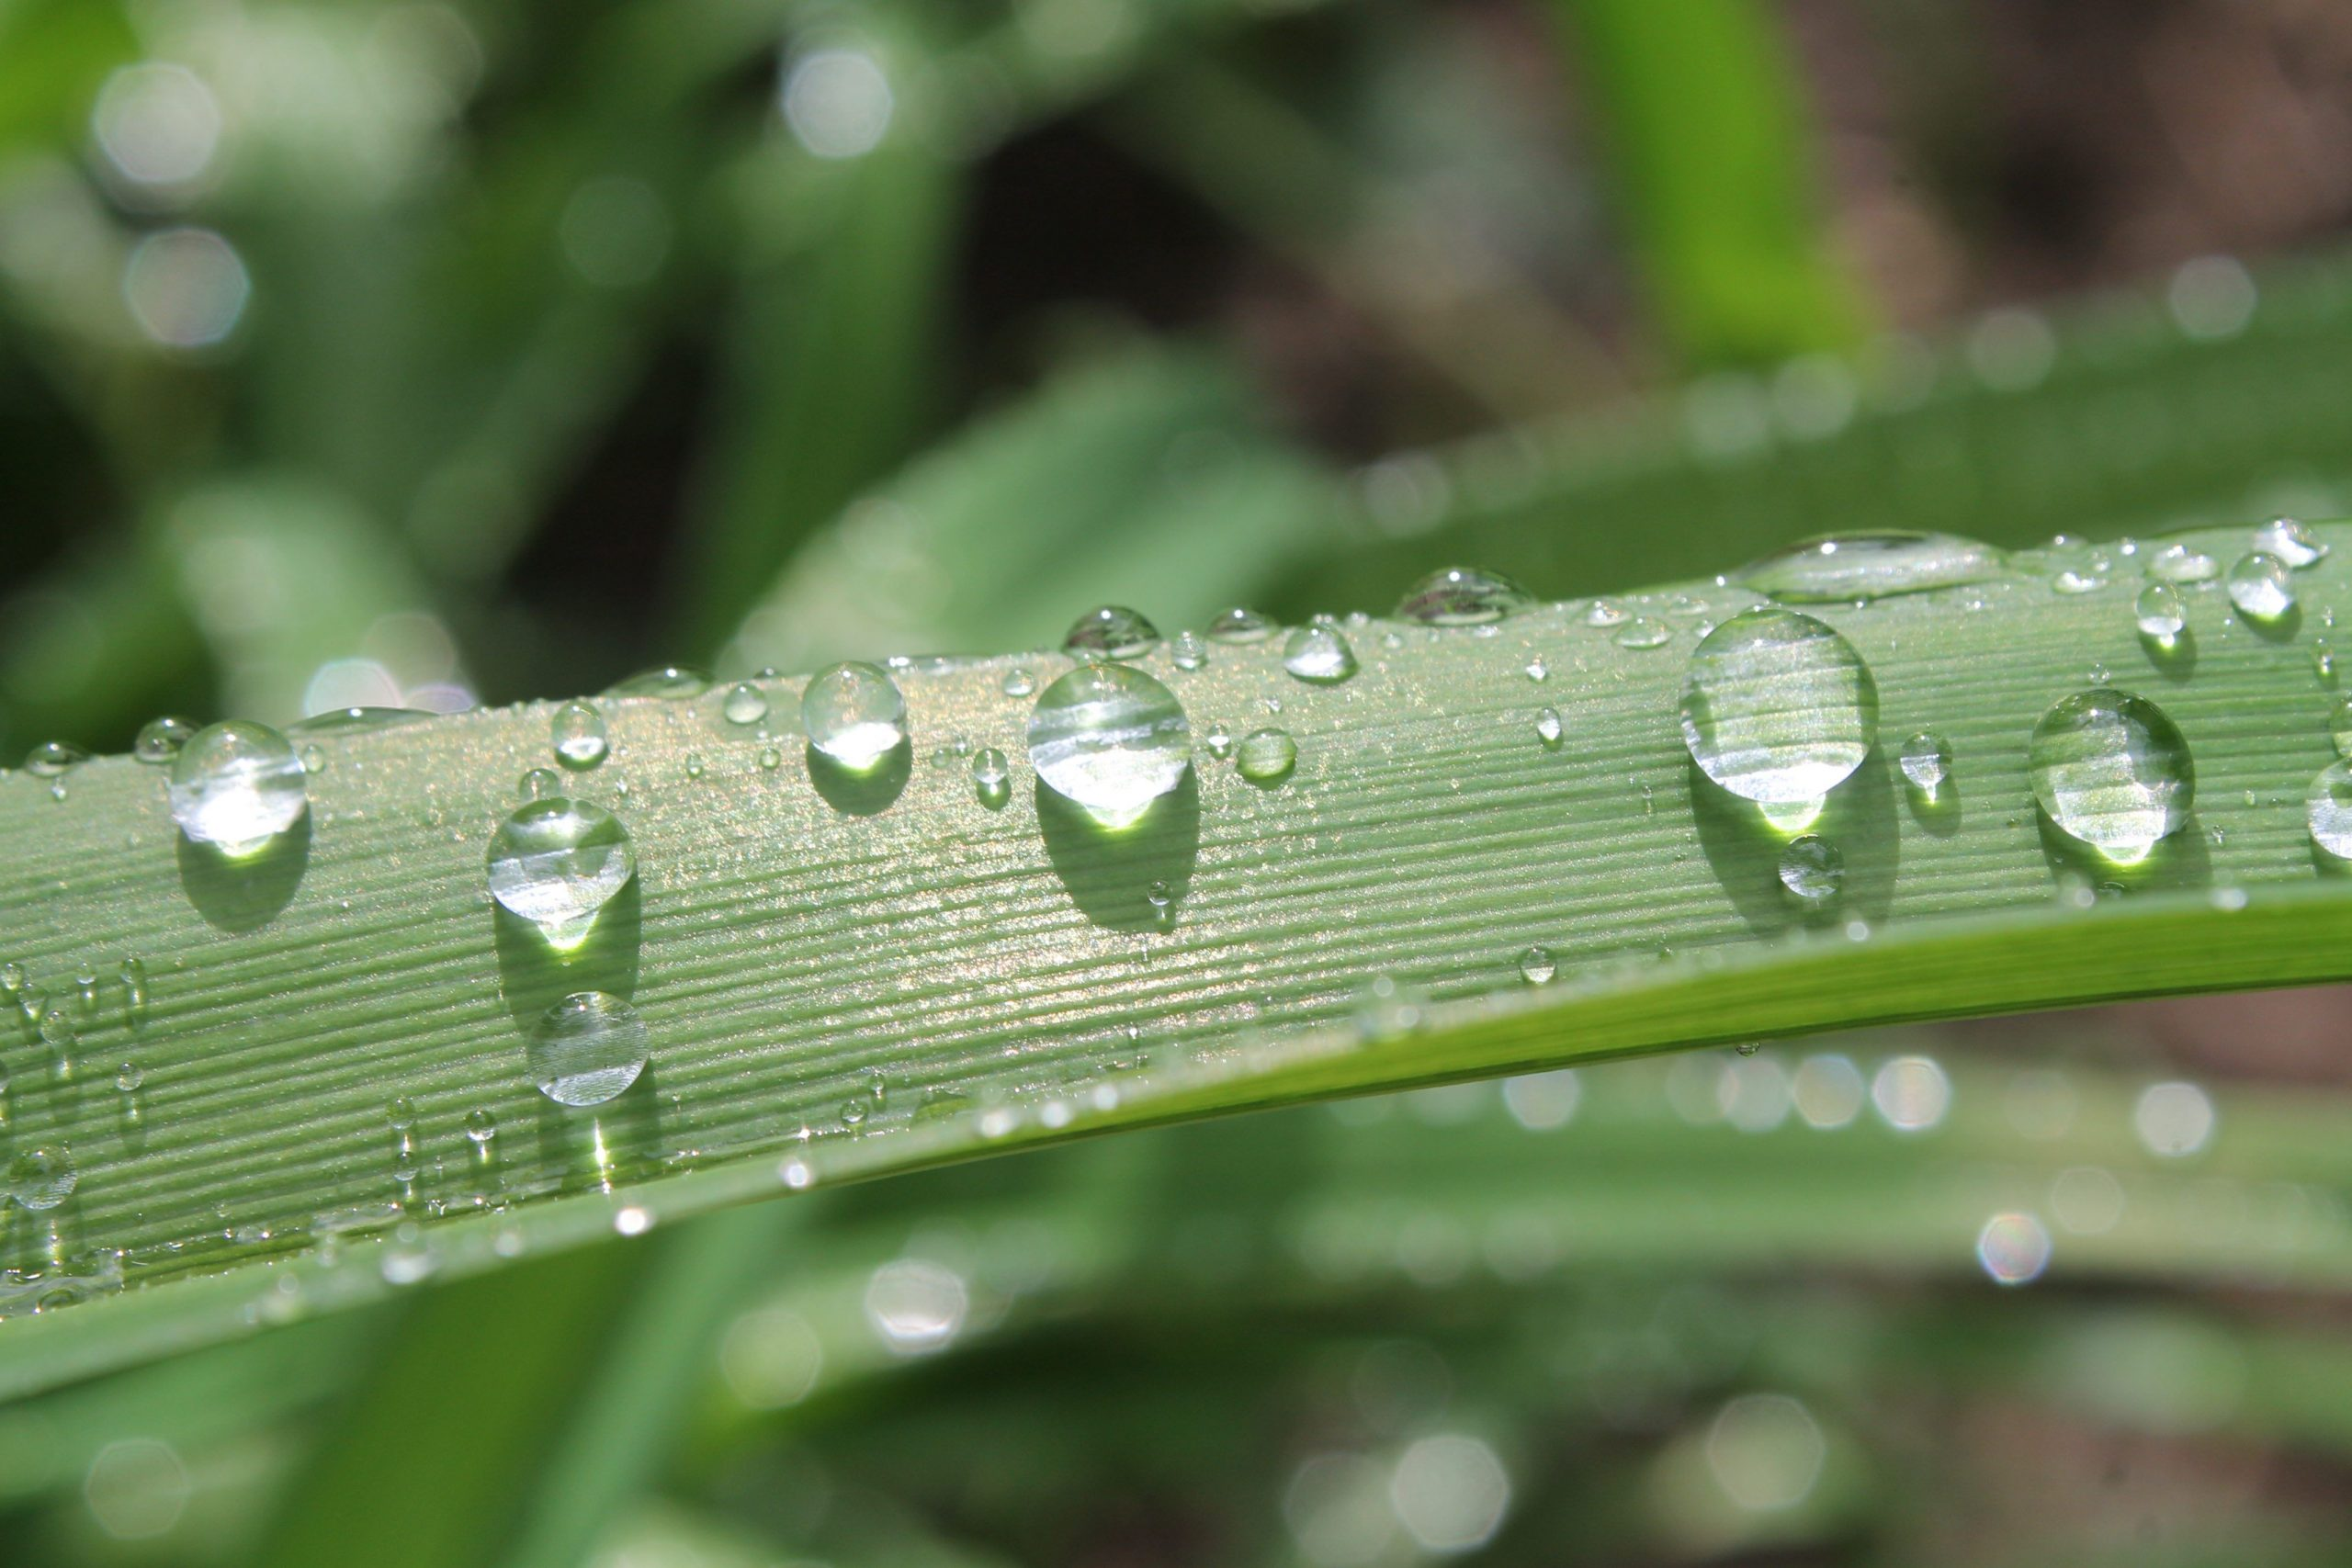 Image shows a close-up photograph of dewdrops on a blade of grass.